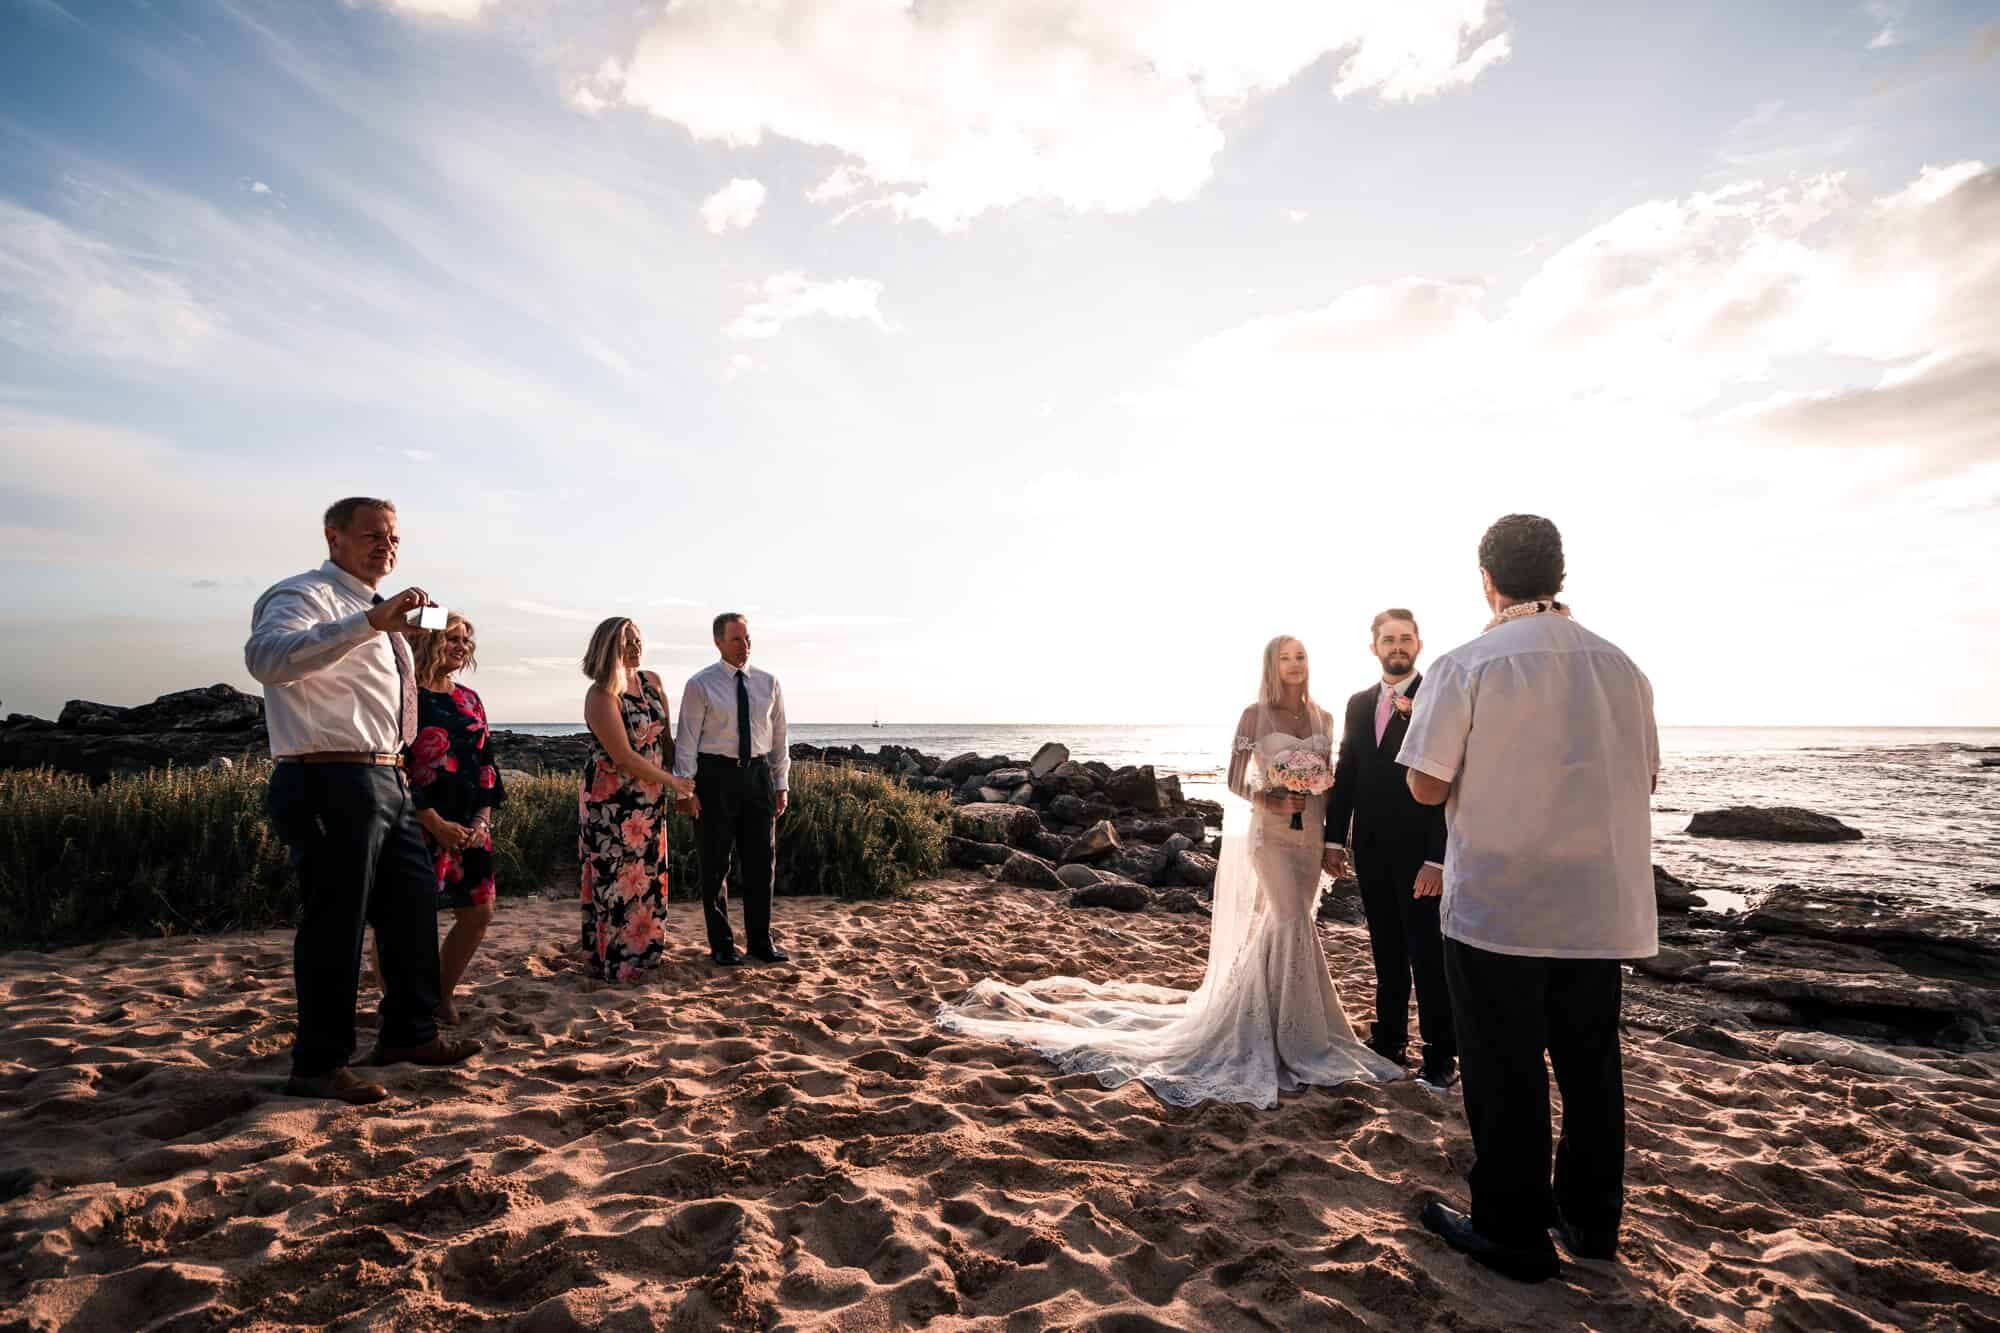 elopement with family in hawaii